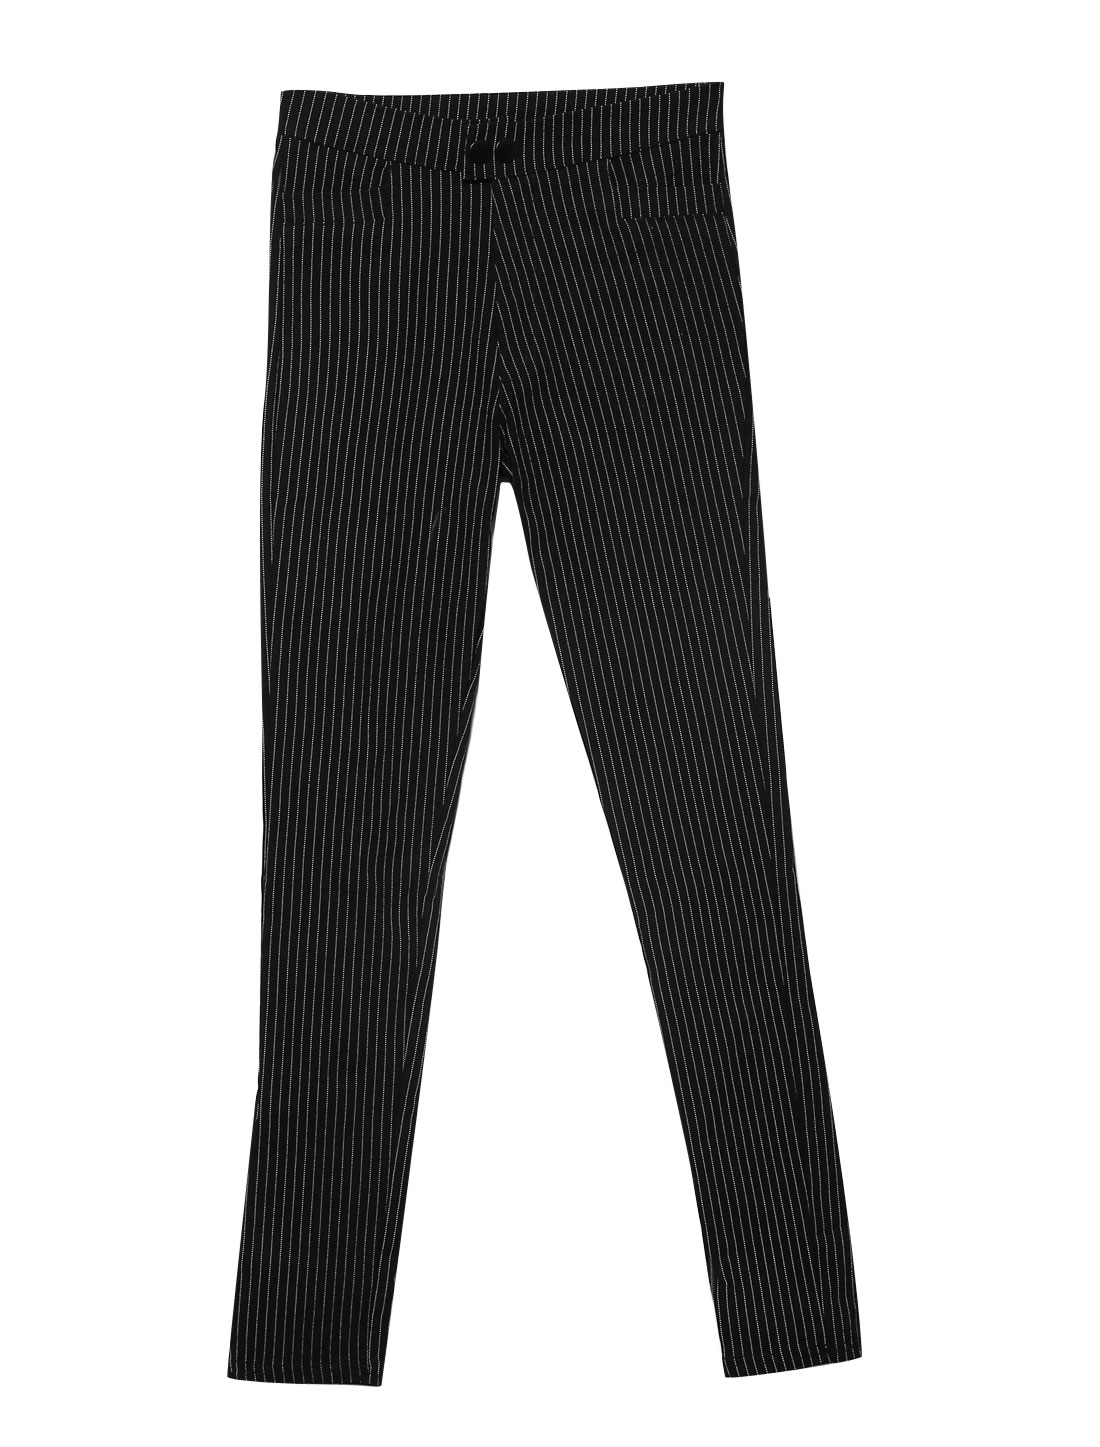 Lady Elastic Waist Stripes Pattern Zip Fly Casual Cropped Pants Black XS